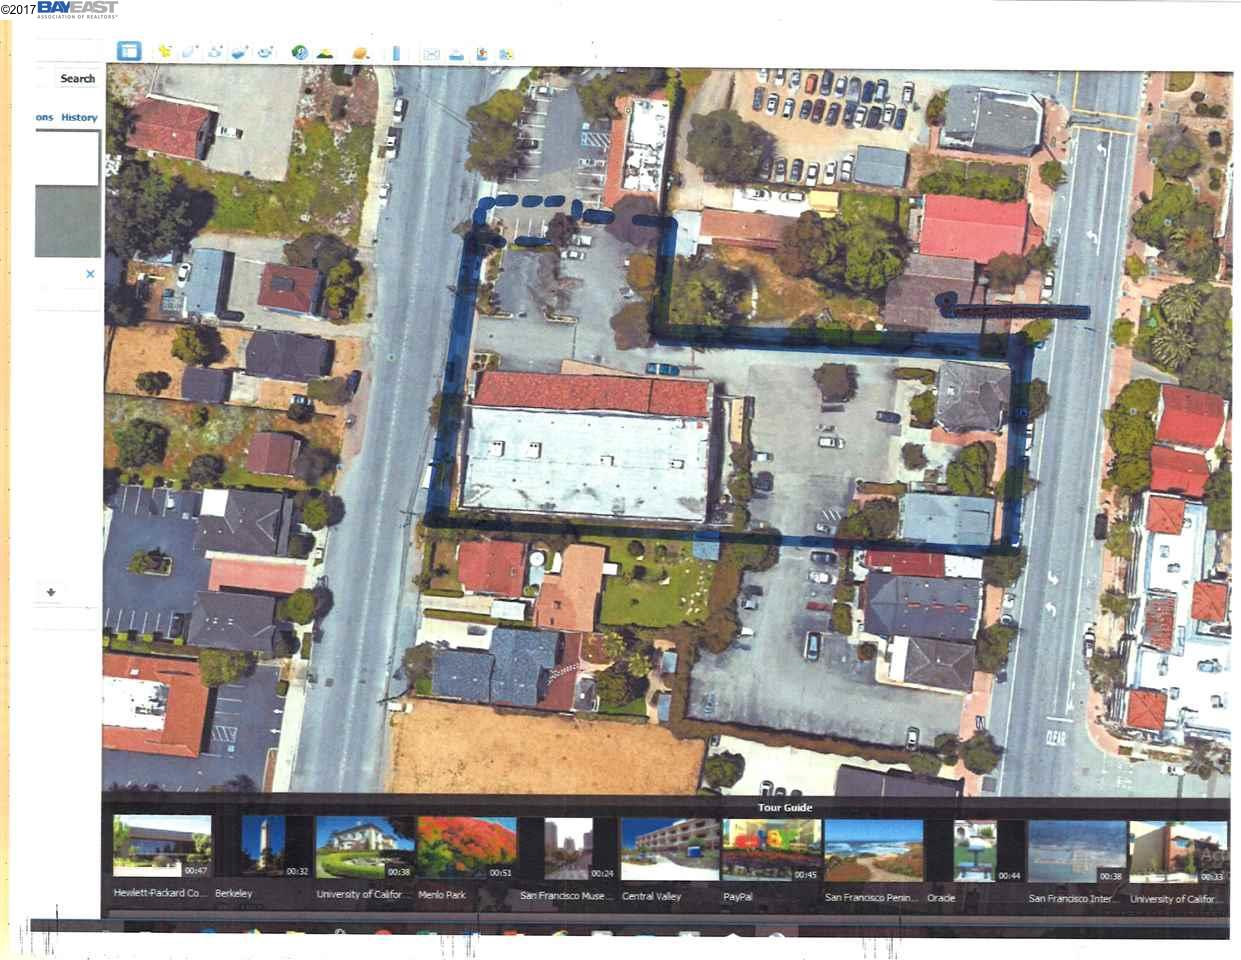 Commercial for Sale at 43341 MISSION BLVD 43341 MISSION BLVD Fremont, California 94539 United States